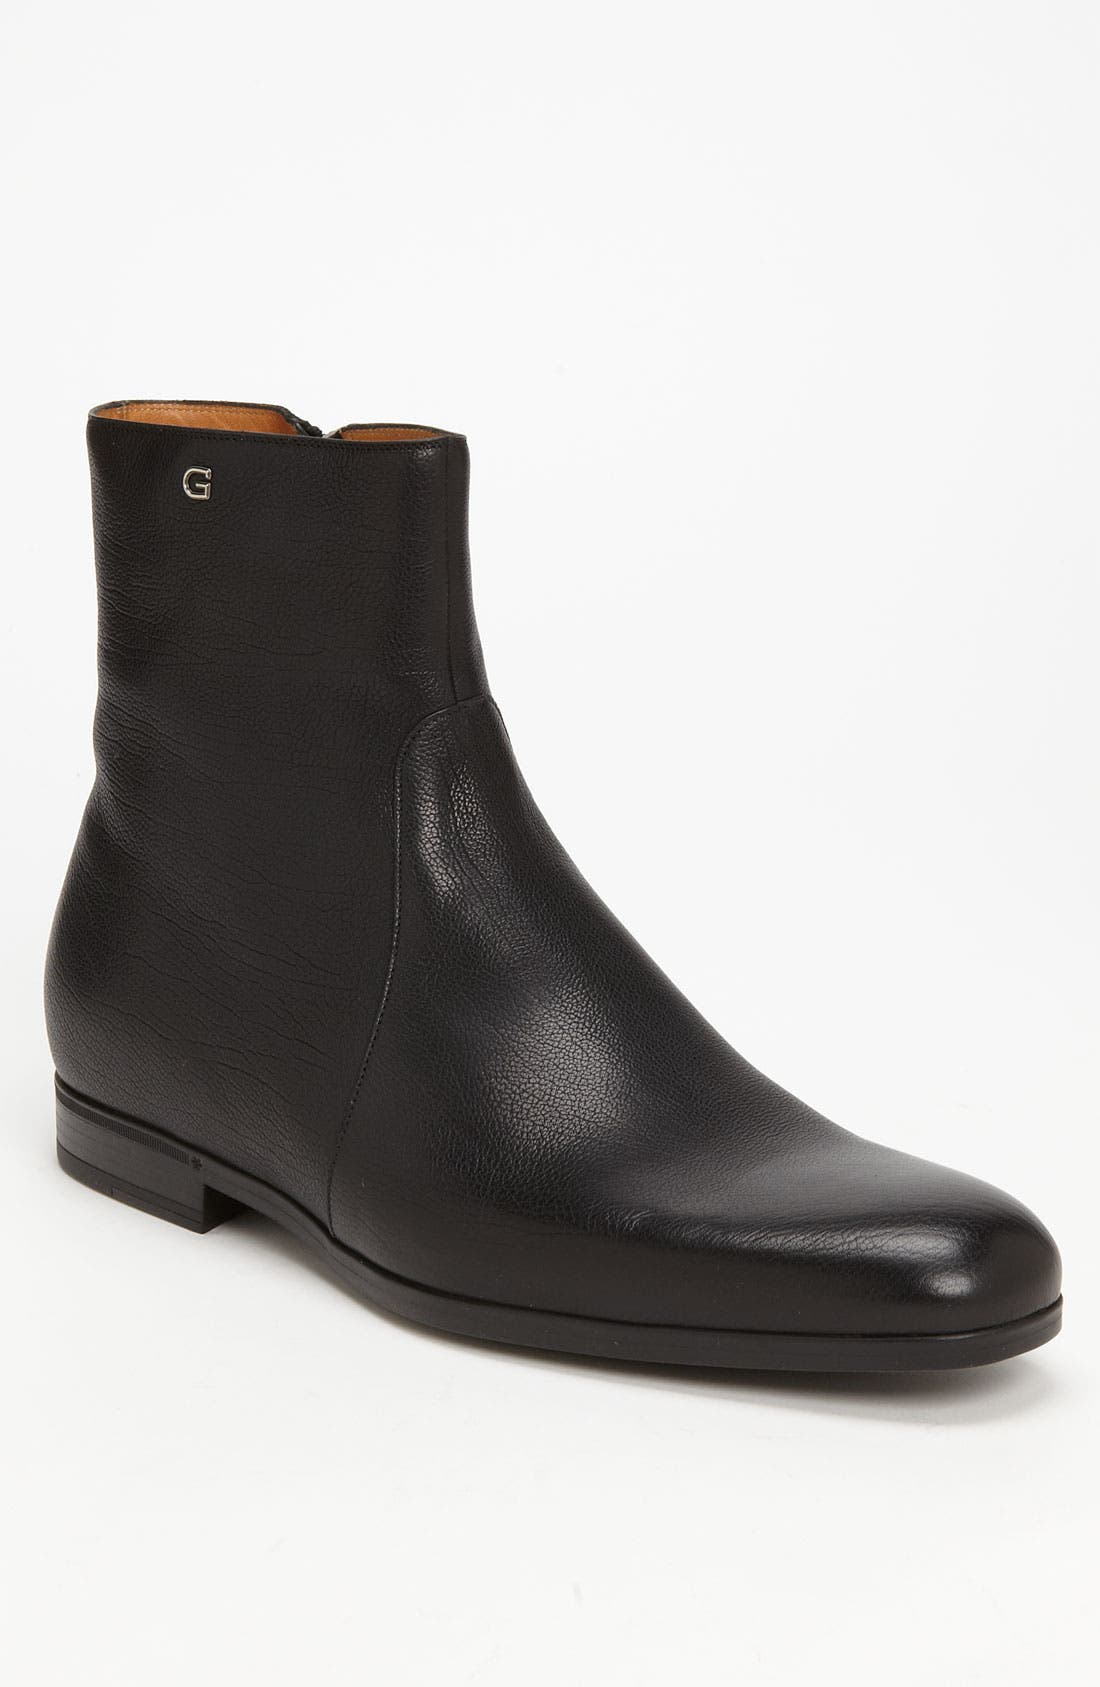 Alternate Image 1 Selected - Gucci 'Deroy' Plain Toe Boot